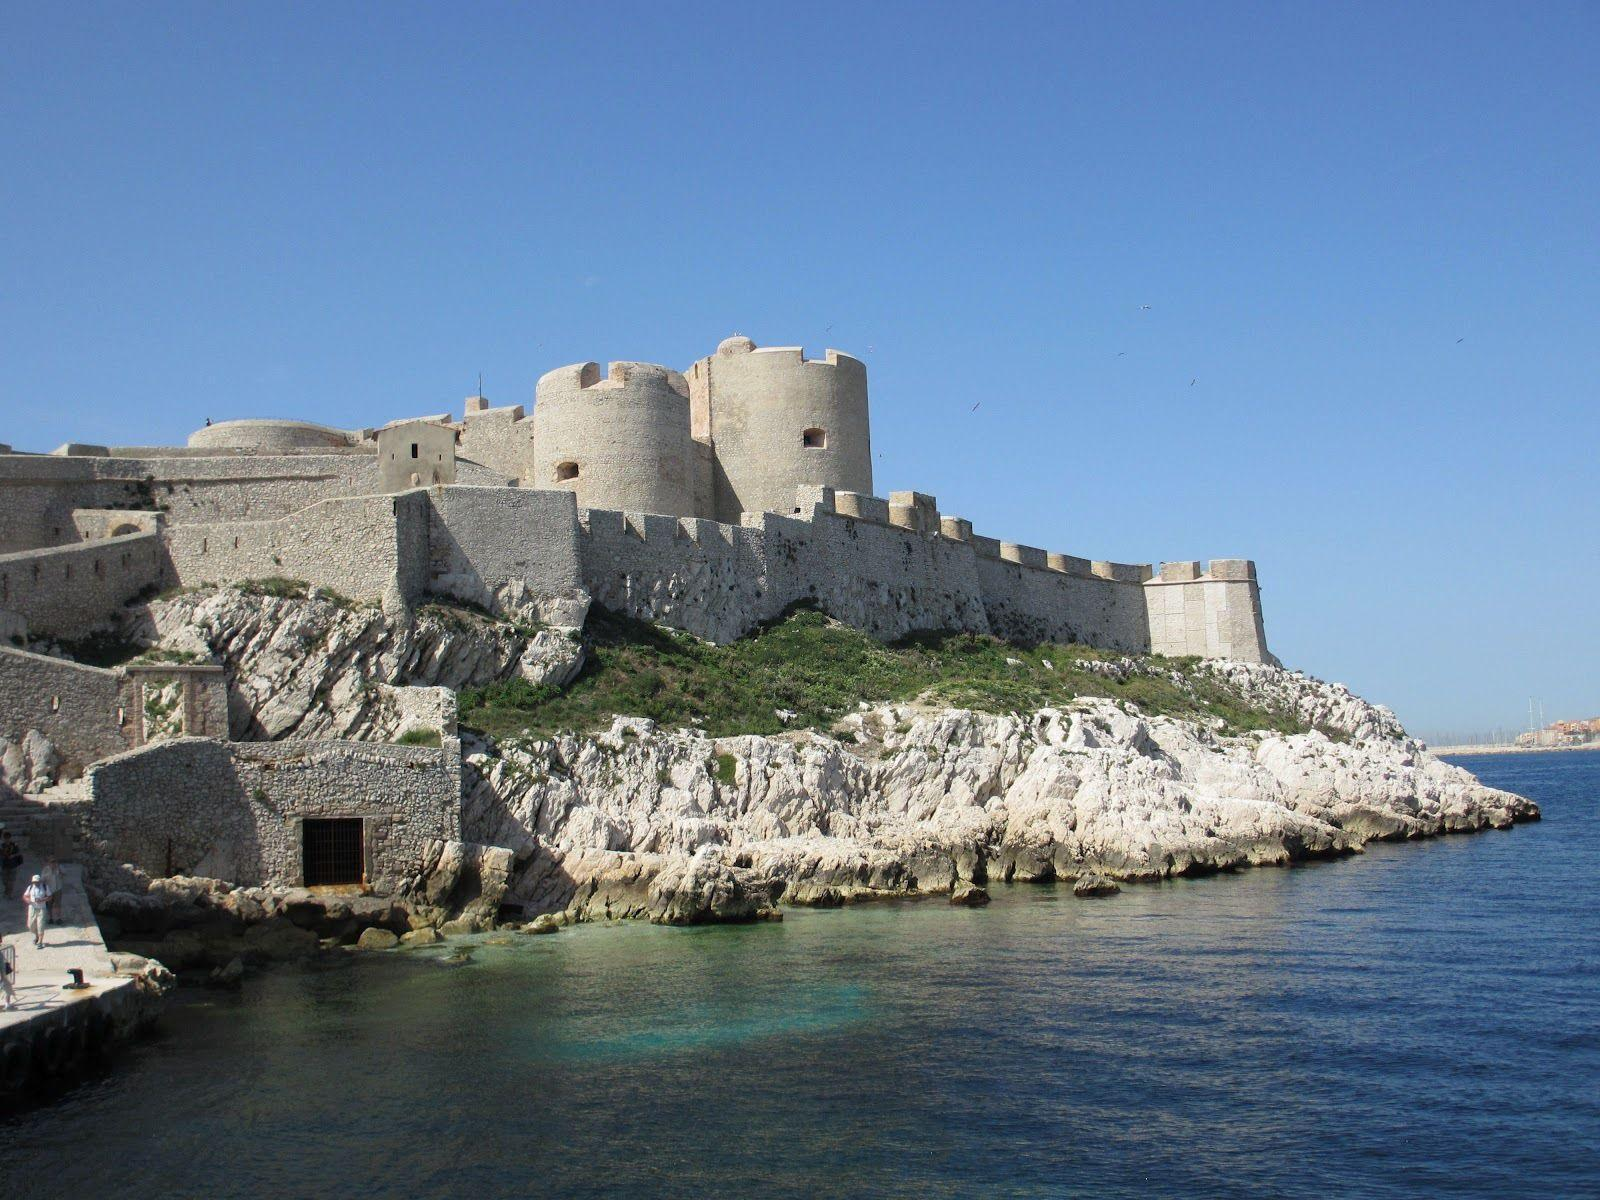 Fortress in Marseille, France wallpapers and image